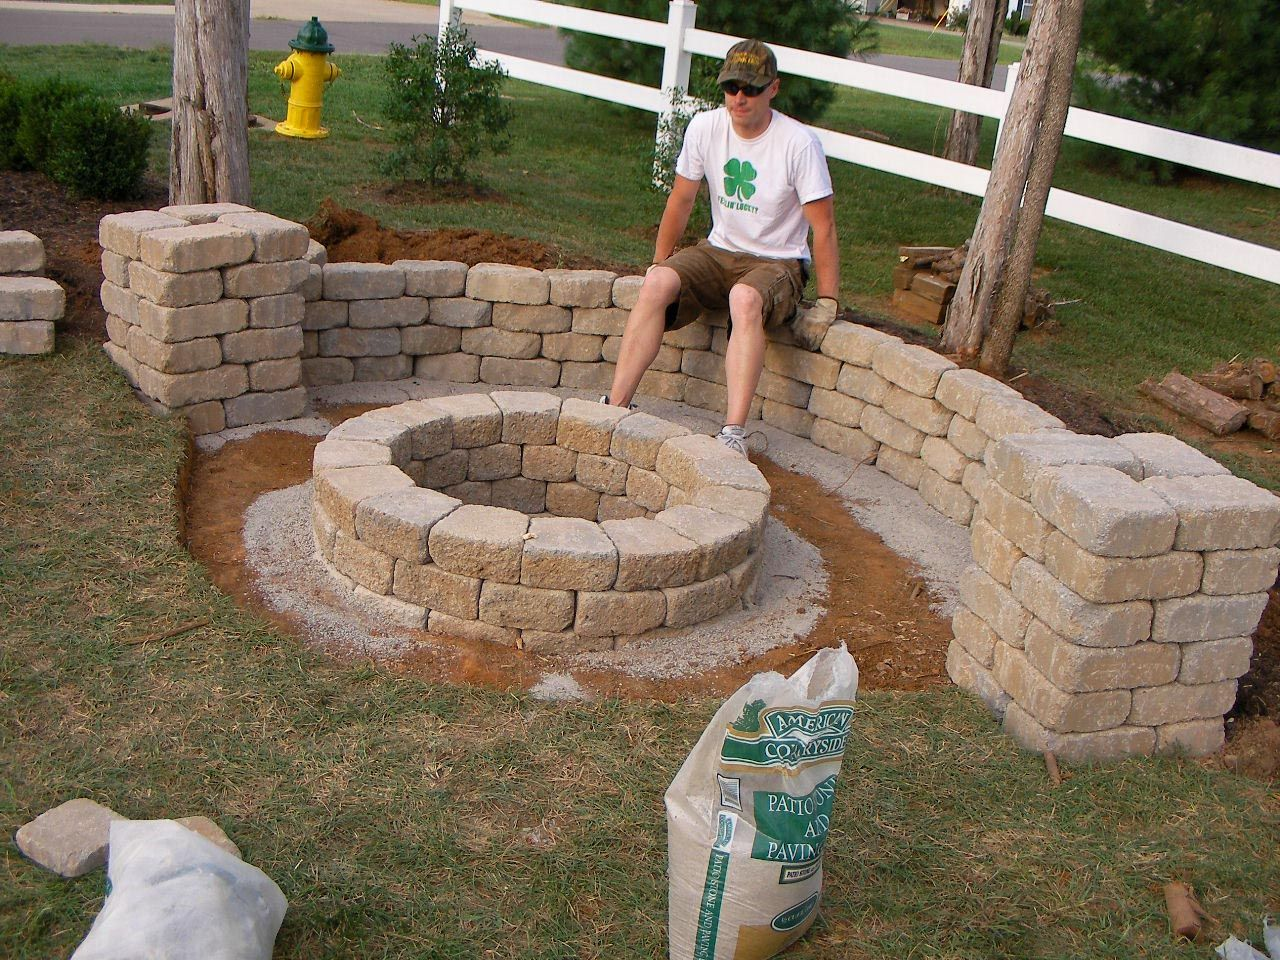 easy backyard fire pit designs ? | pinterest - Patio Fire Pit Ideas